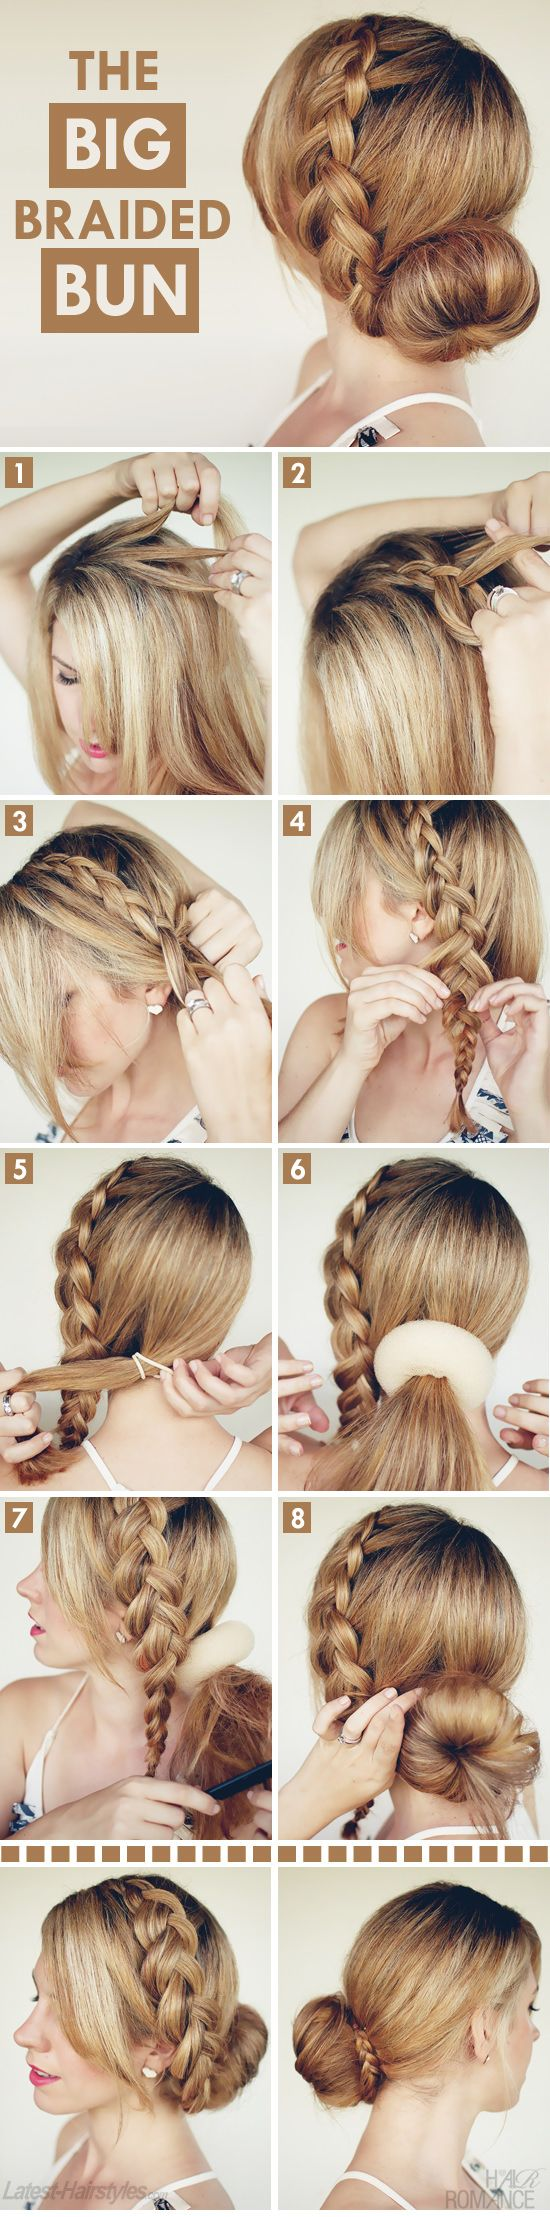 Braided hair bun